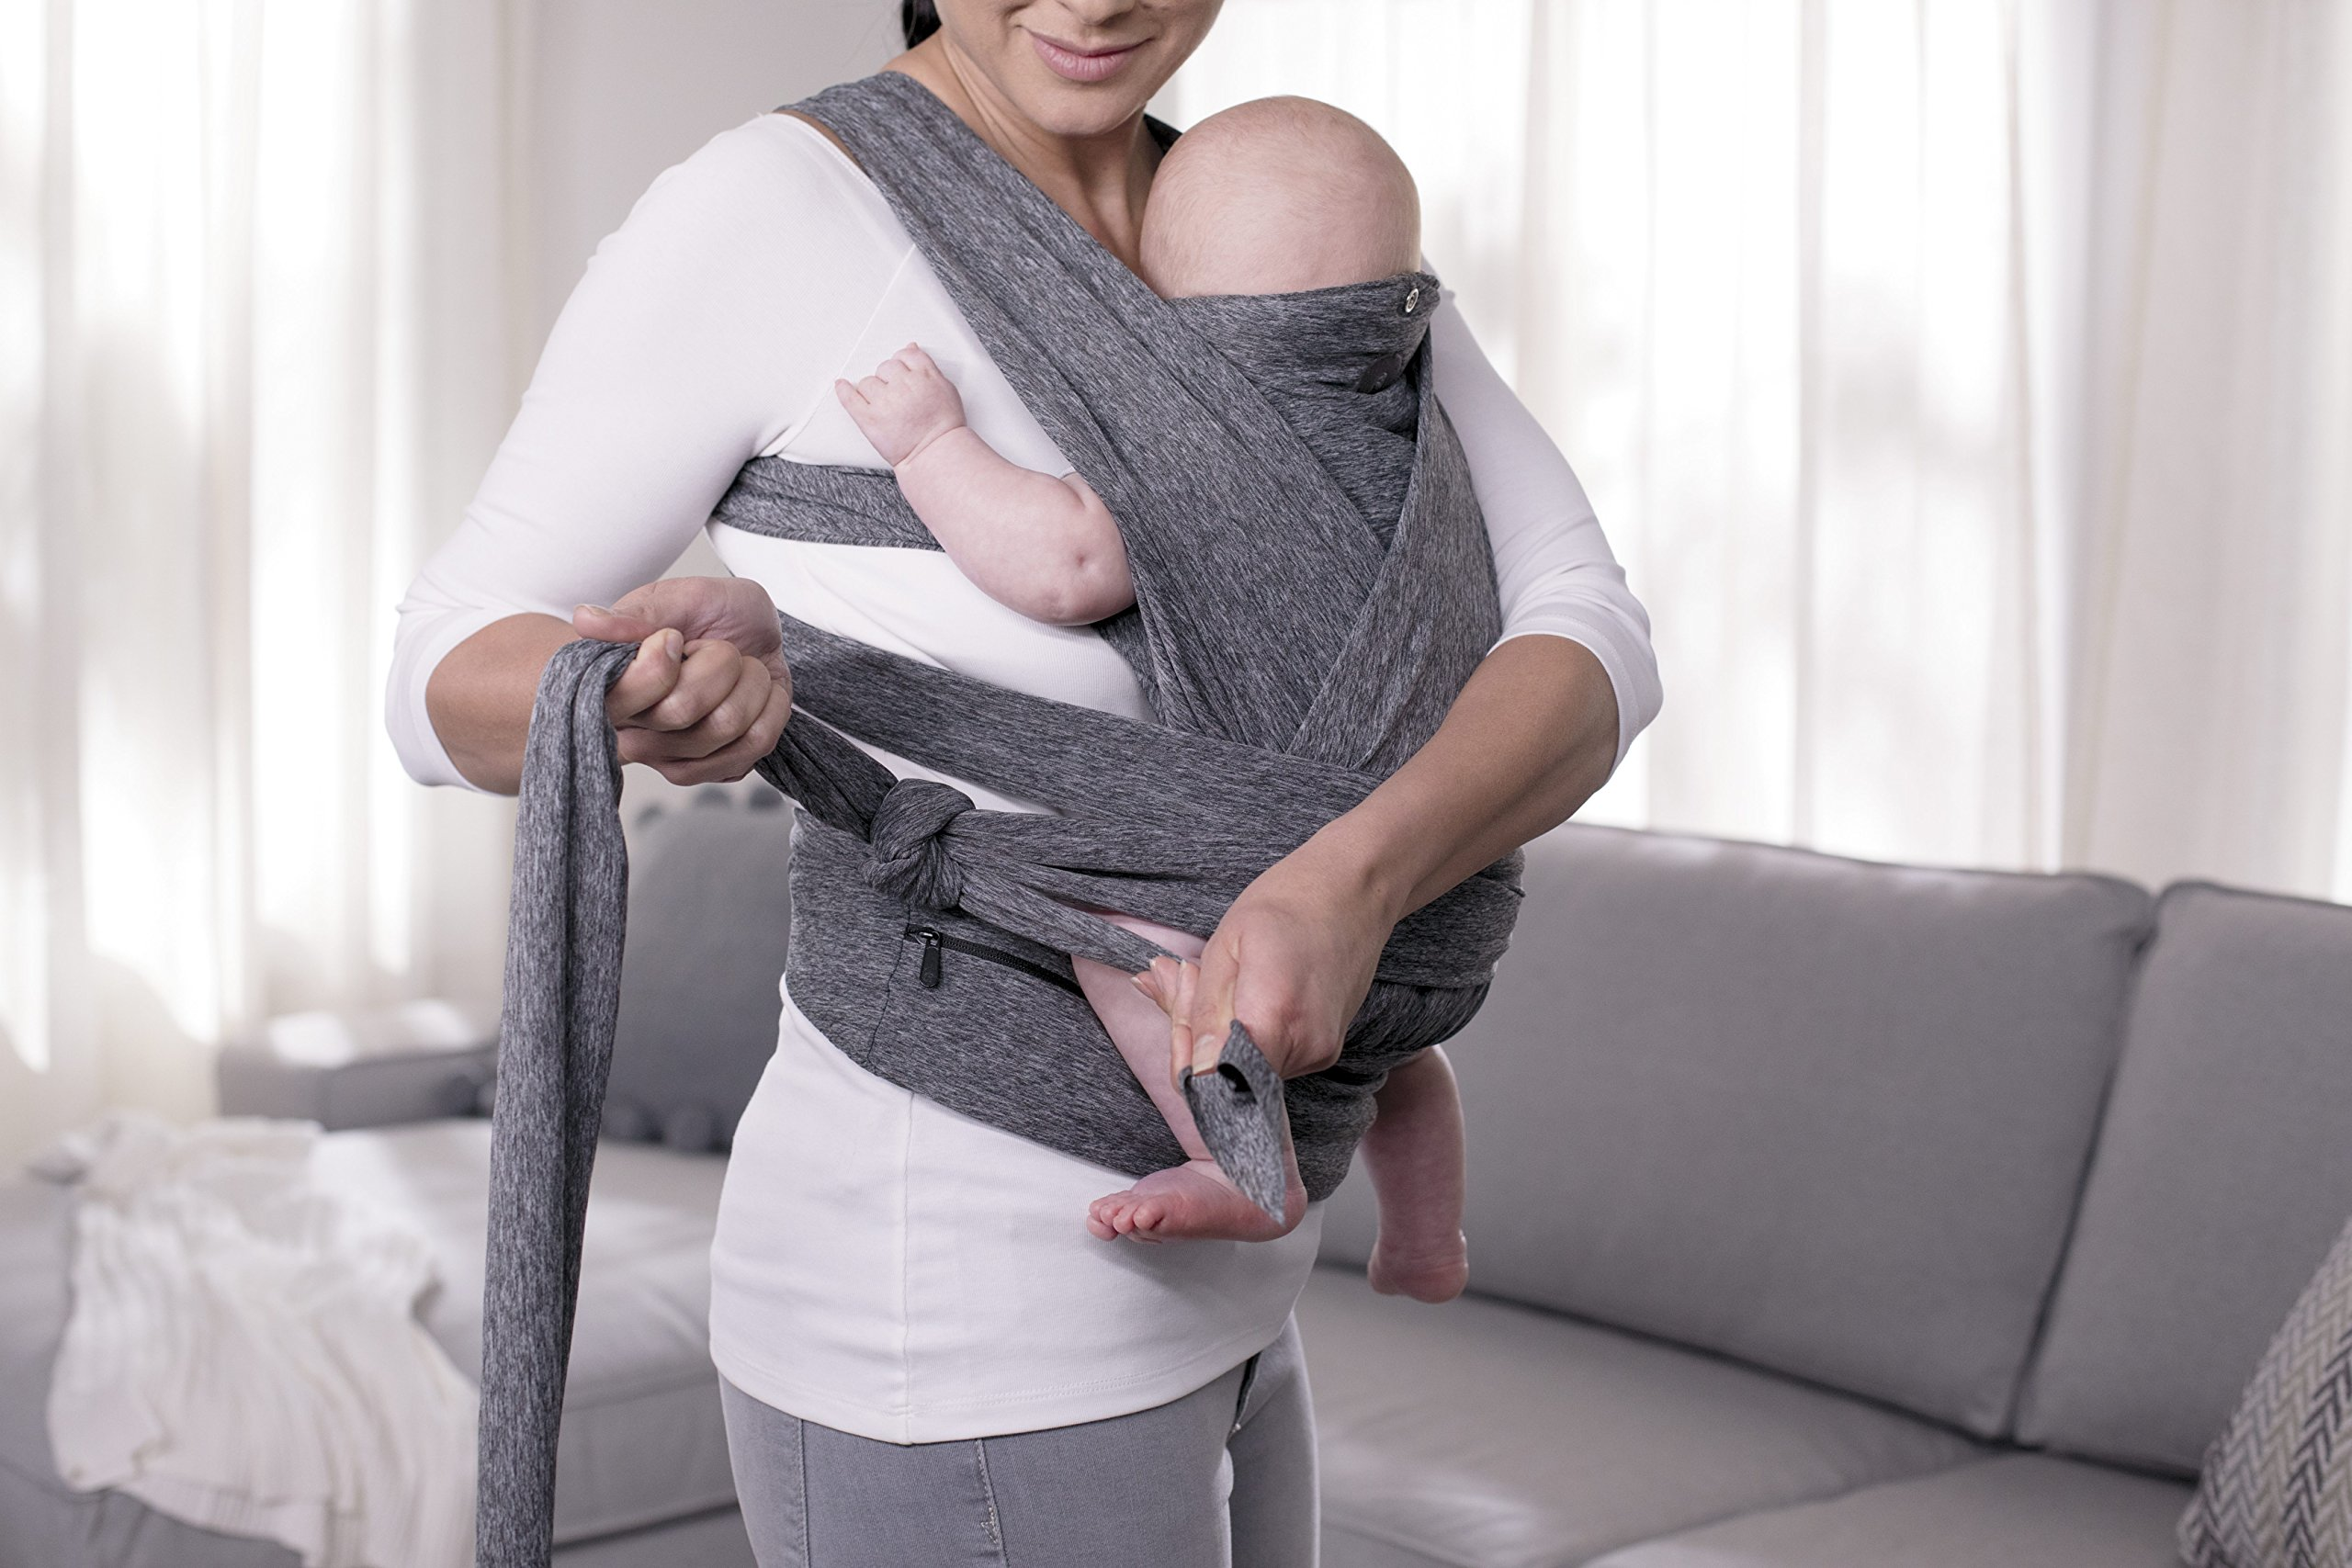 Chicco ComfyFit Baby Carrier One size Chicco Perfect fit, no infant insert required; recommended baby weight: 8-35lbs One size fits most, which makes sharing your carrier between caregivers quick and easy 2 comfy carrying positions: front face-in and front face-out 10